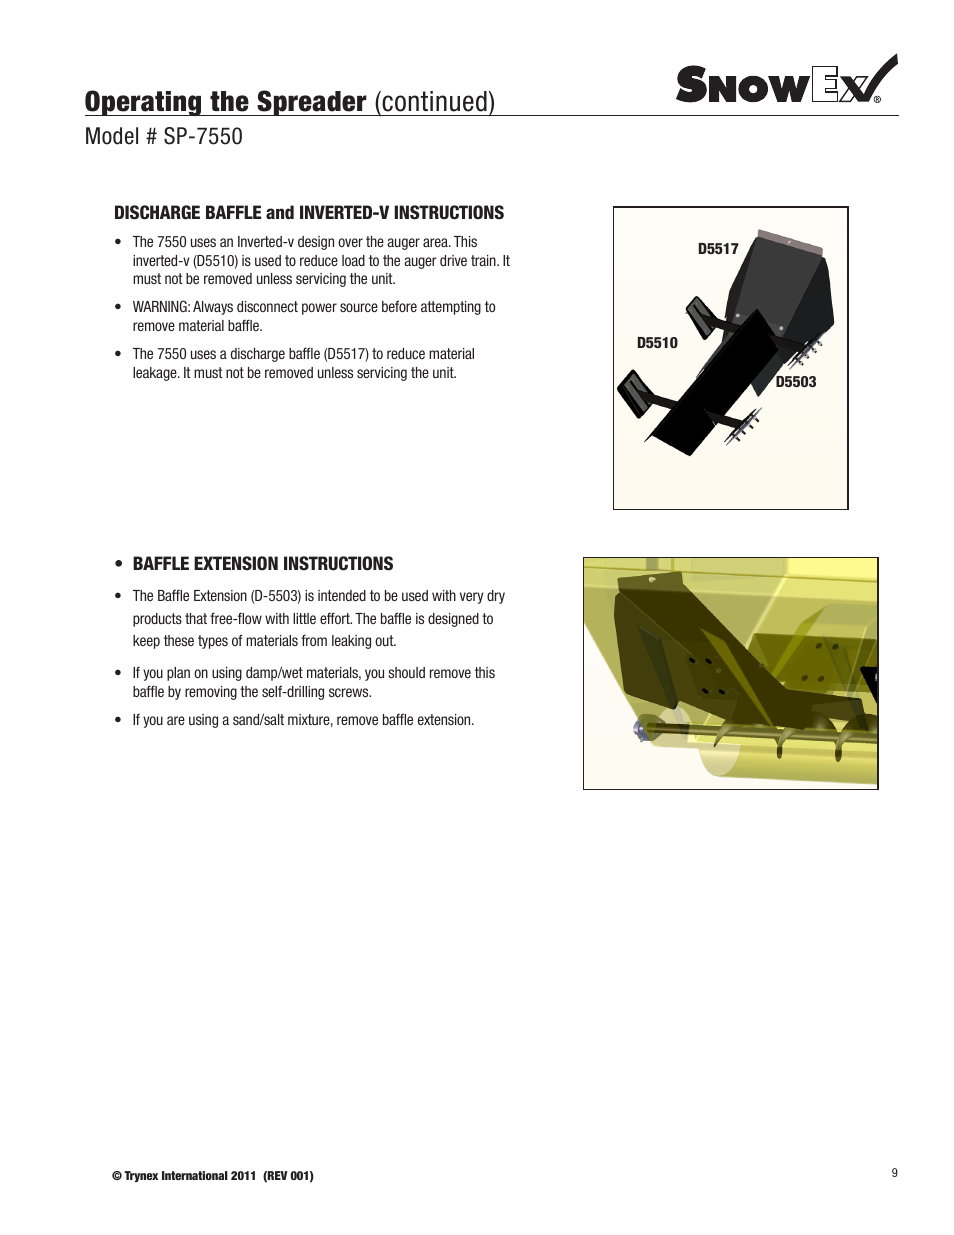 Operating The Spreader Continued Model Sp 7550 Snowex Salt Wiring Diagram User Manual Page 9 36